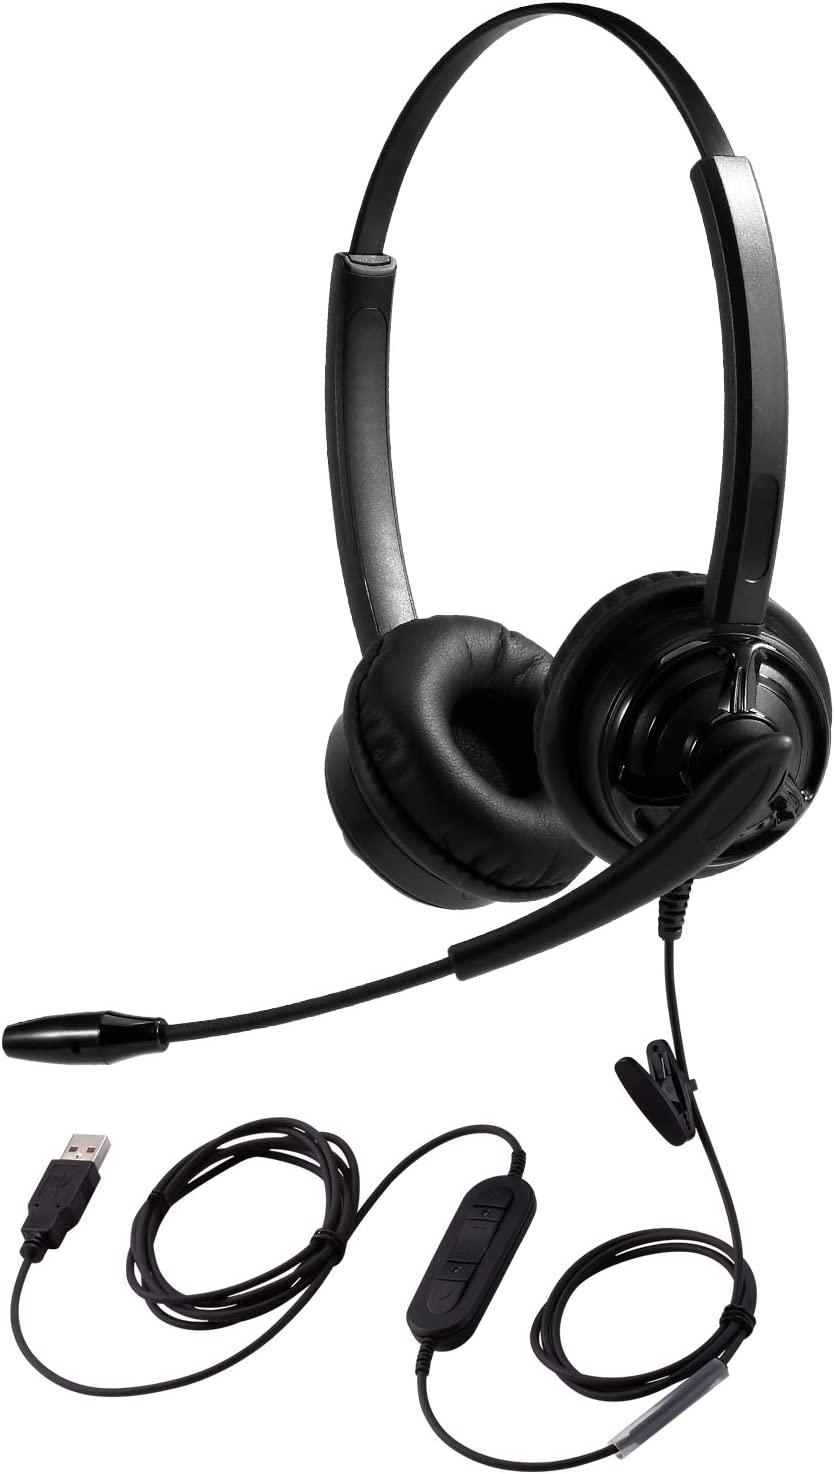 USB Headset for Teams Meeting Skype Call Video Conferencing Virtual Learning Online Teaching Work from Home Call Center Customer Care Service w/Mute Button Volume Control Noise Cancelling Microphone